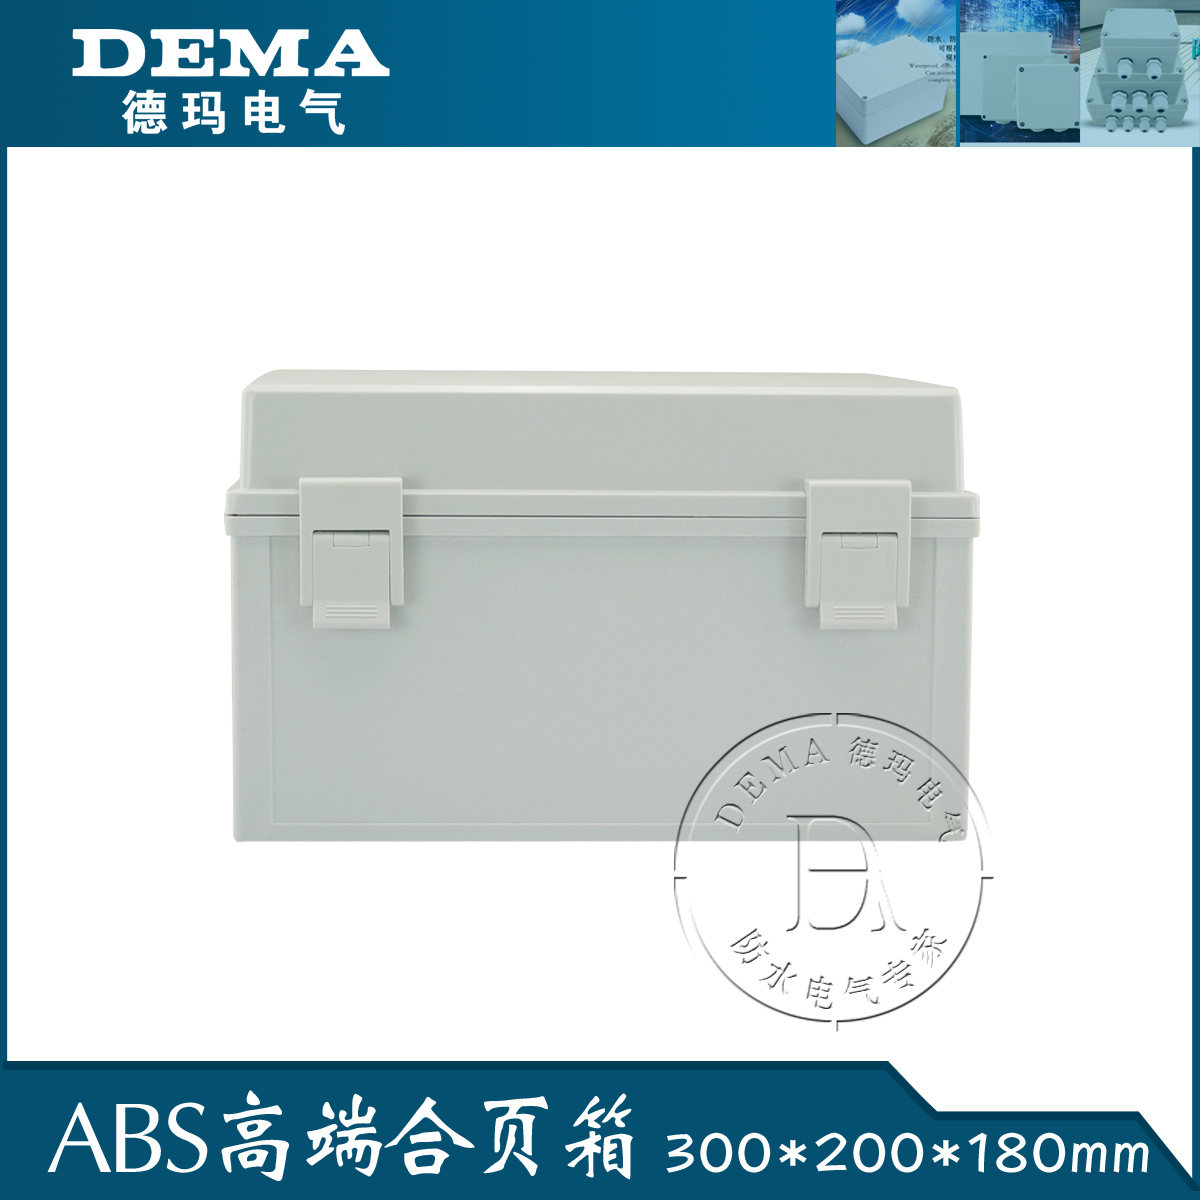 DImax hinge plastic waterproof box 300*200*180 distribution box junction box electrical box PLC control box